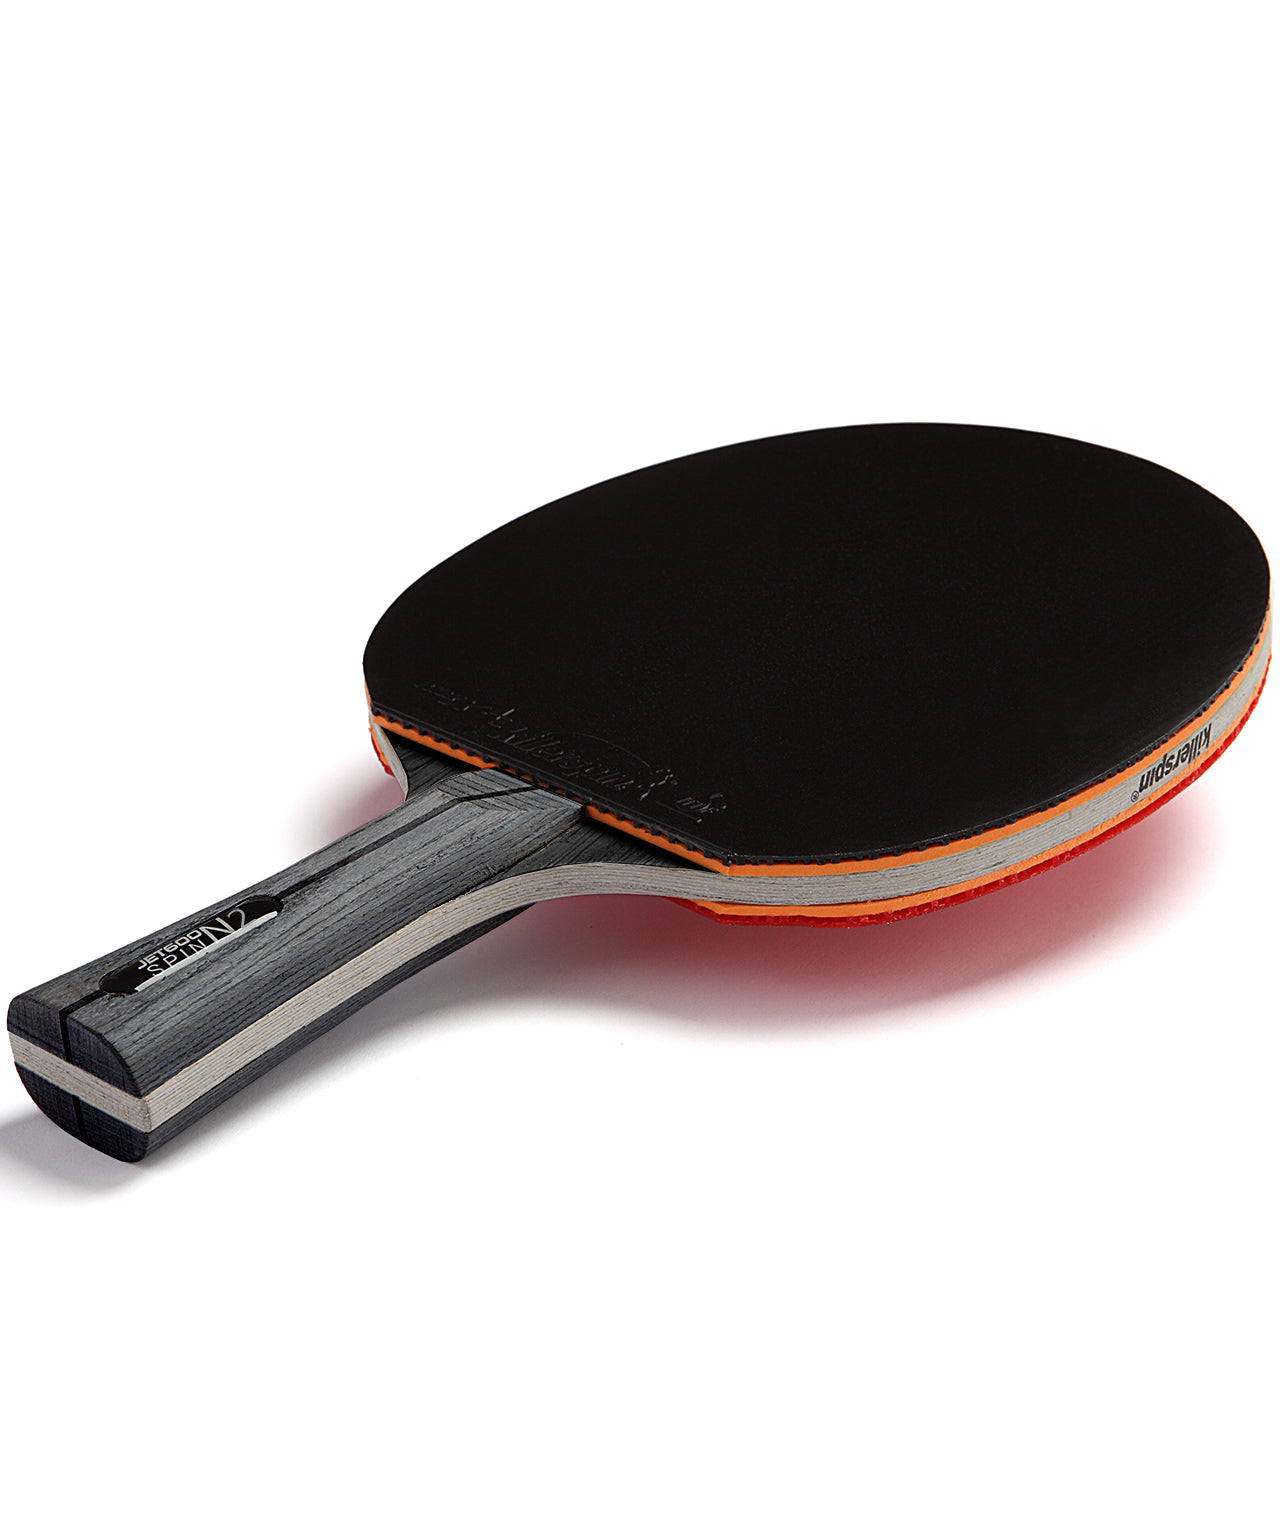 Killerspin Ping Pong Paddle Jet600 Spin N2 - Black Rubber